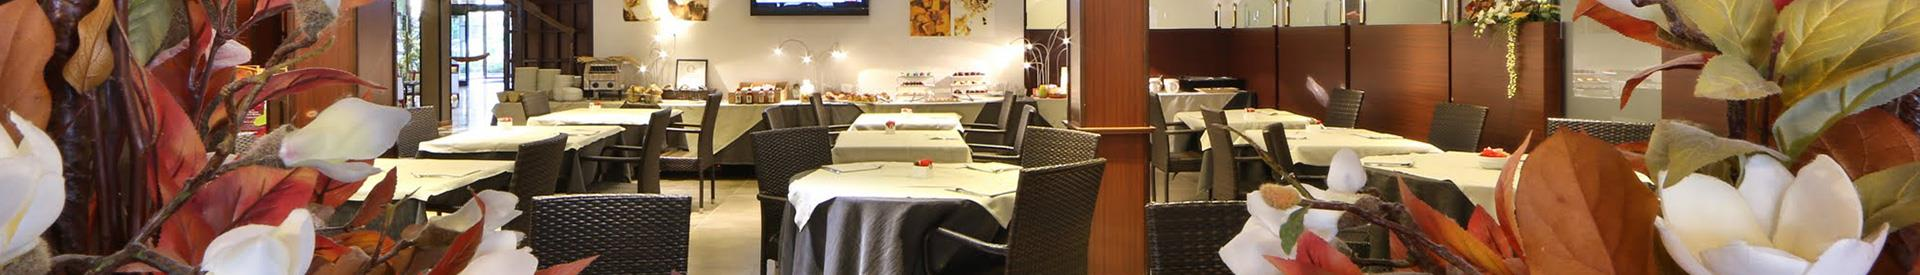 Looking for a hotel for your stay in Campogalliano (MO)? Book/reserve at the Best Western Hotel Modena District